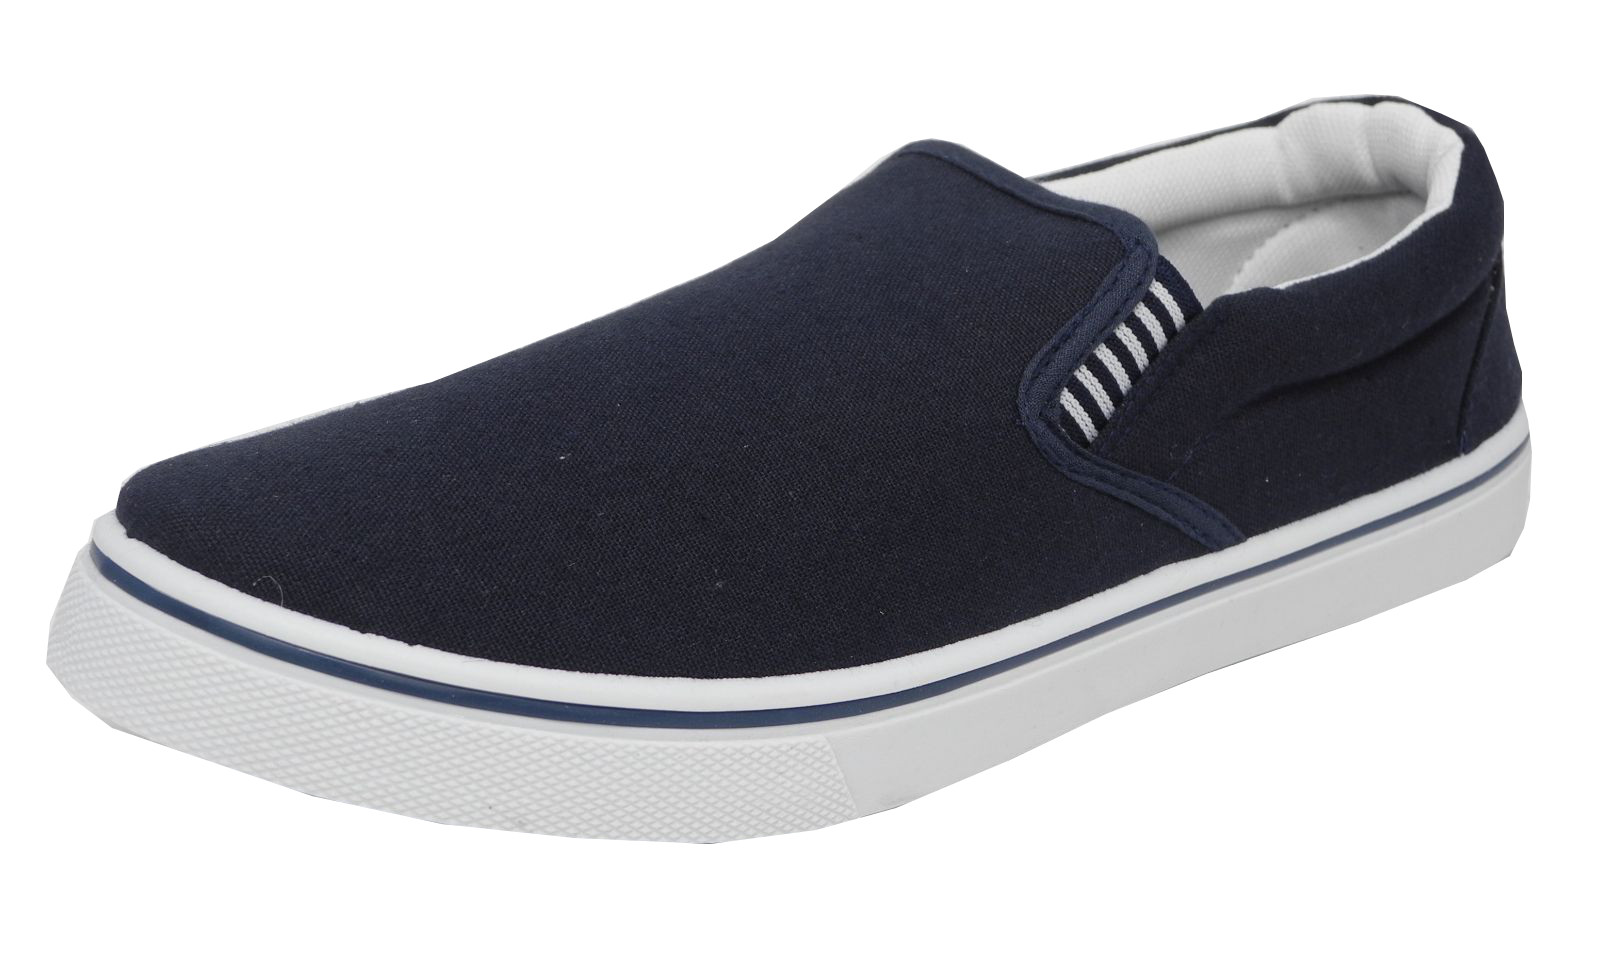 Mens Boys Canvas Boat Yachting Deck Shoes Slip On Pumps DEK Blue Size 413